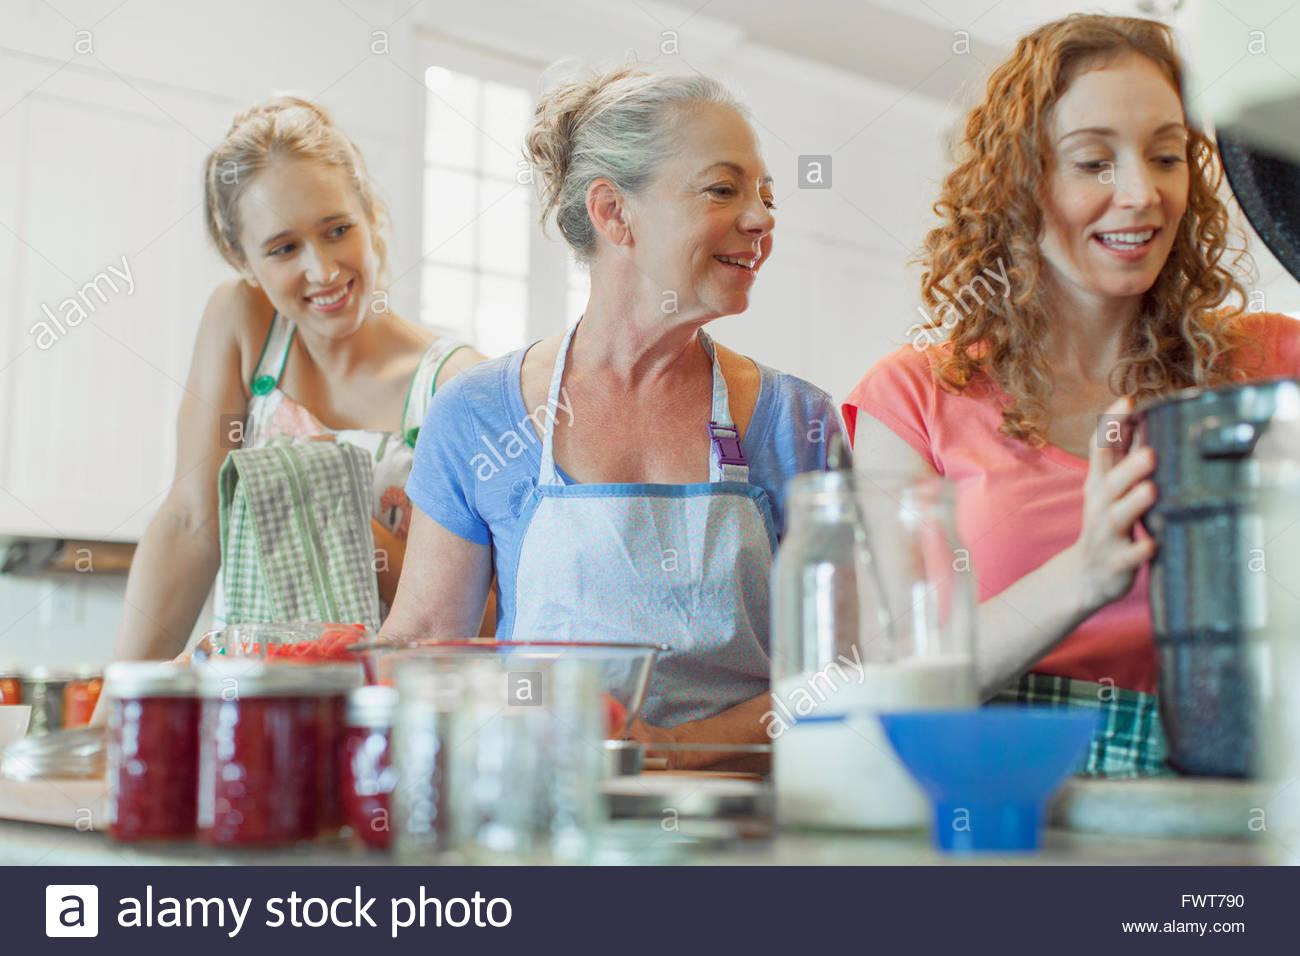 Mother and daughters in kitchen making preserves. - Stock Image